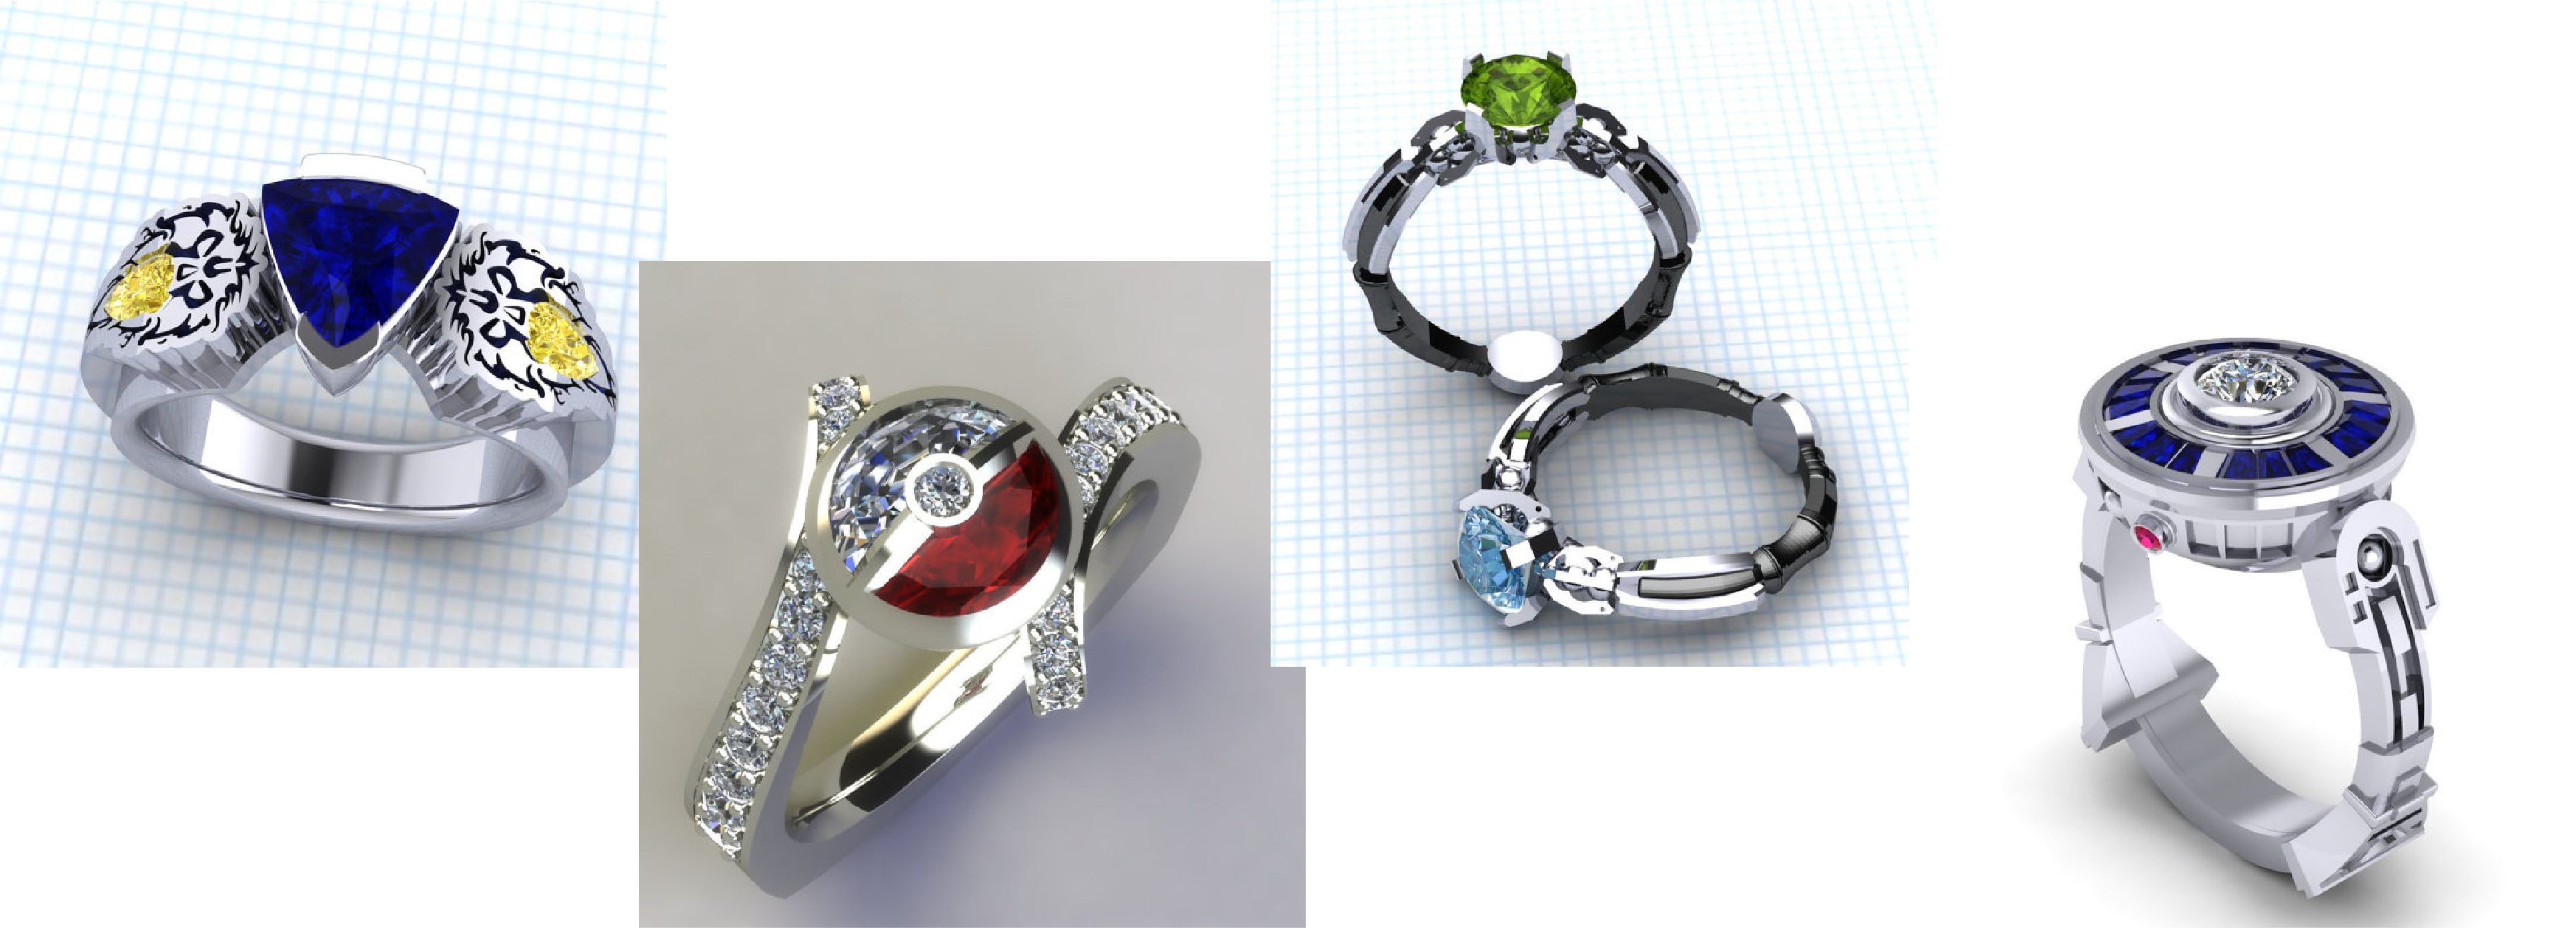 zombie rings geeks gamer beautiful for rd wedding nerd cake ring engagement diamond of elegant